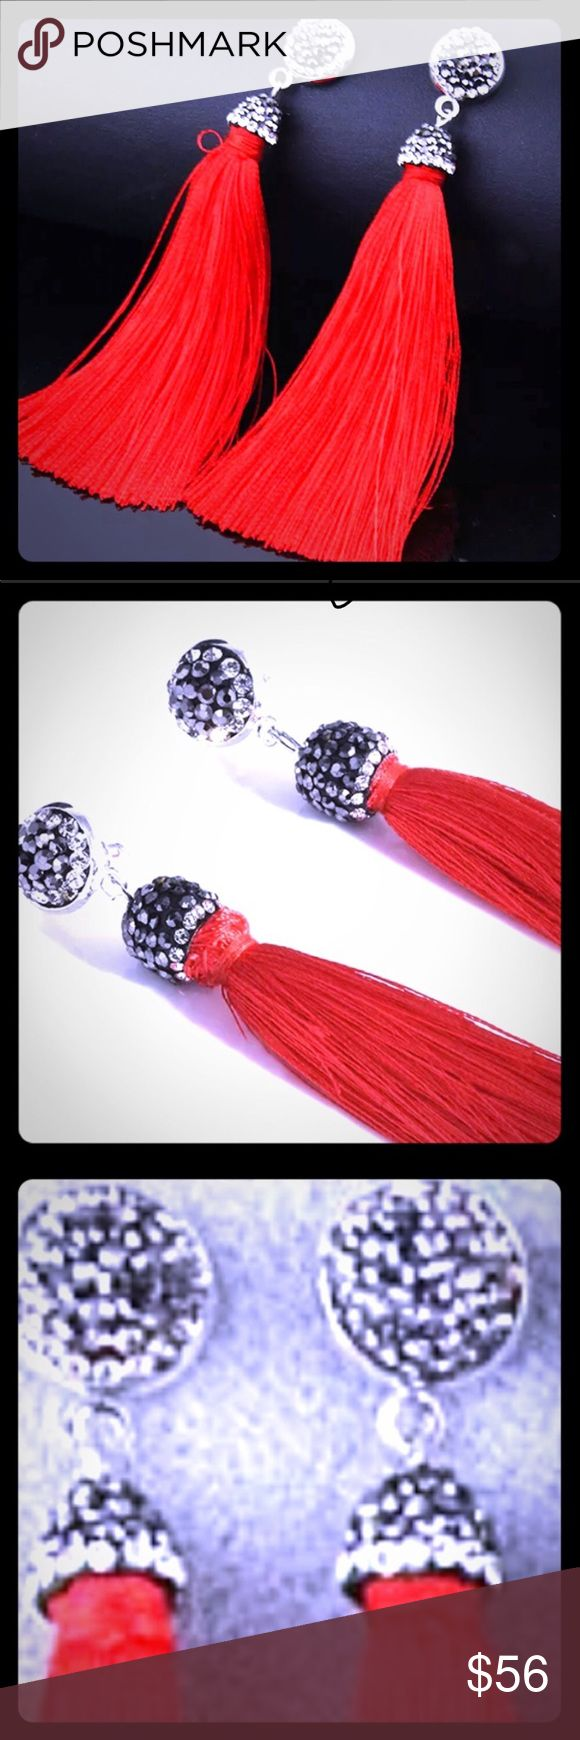 "SILK TASSELS & SWAROVSKI EARRINGS 🆕 RED EARRINGS IN THE TRUE STYLE        DEFINITION OF ""BOHO CHÍC"" !! 💋LONG SILK THREAD TASSELS         ADORNED WITH SWAROVSKI GRAY &         CLEAR STONES.  💋PIERCED, POST BACK                        ☮️☮️☮️ 🤩I WILL NEVER BLOCK YOU OR BE       ANGRY FOR AN OFFER BEING TO LOW! 🤩IF YOUR OFFER IS TOO LOW, I WILL          SIMPLY REPLY                   🤩🍾🎉✌🏼❤️😻☮️🦋                 20% OFF PURCHASE OF                   3 or MORE ITEMS WITH…"